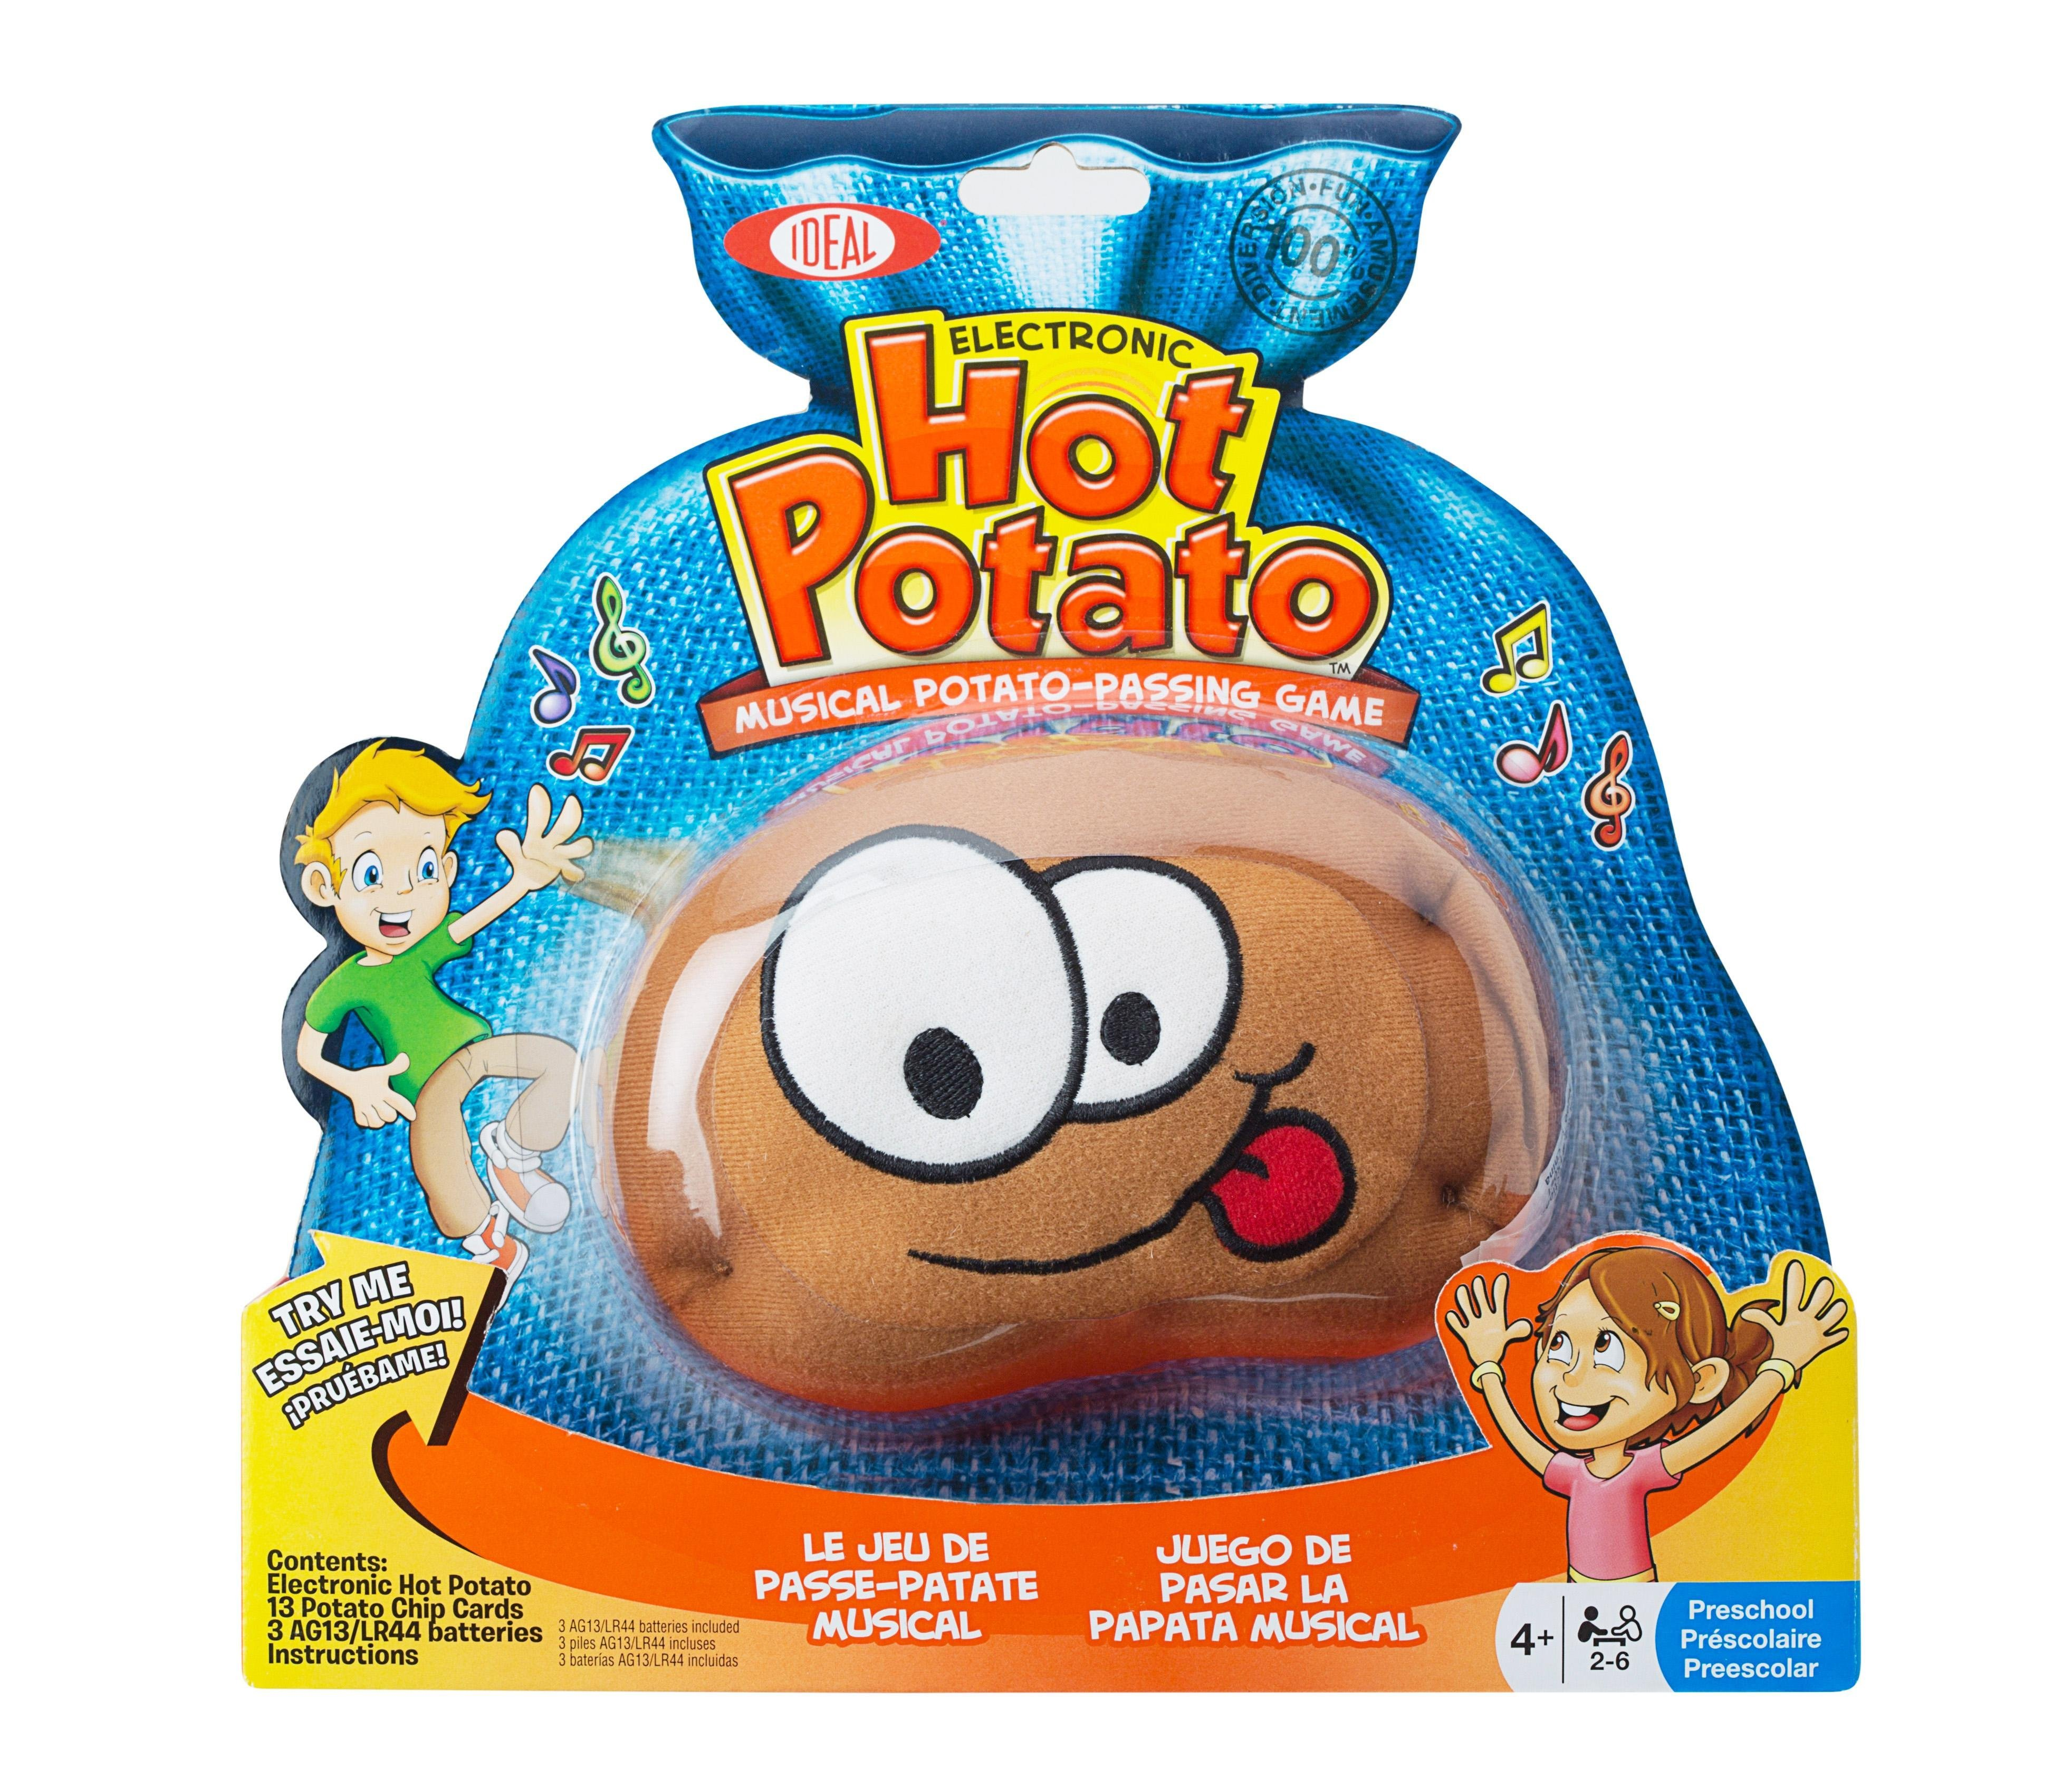 Amazon.com: Ideal Hot Potato Electronic Musical Passing Game: Toys ...